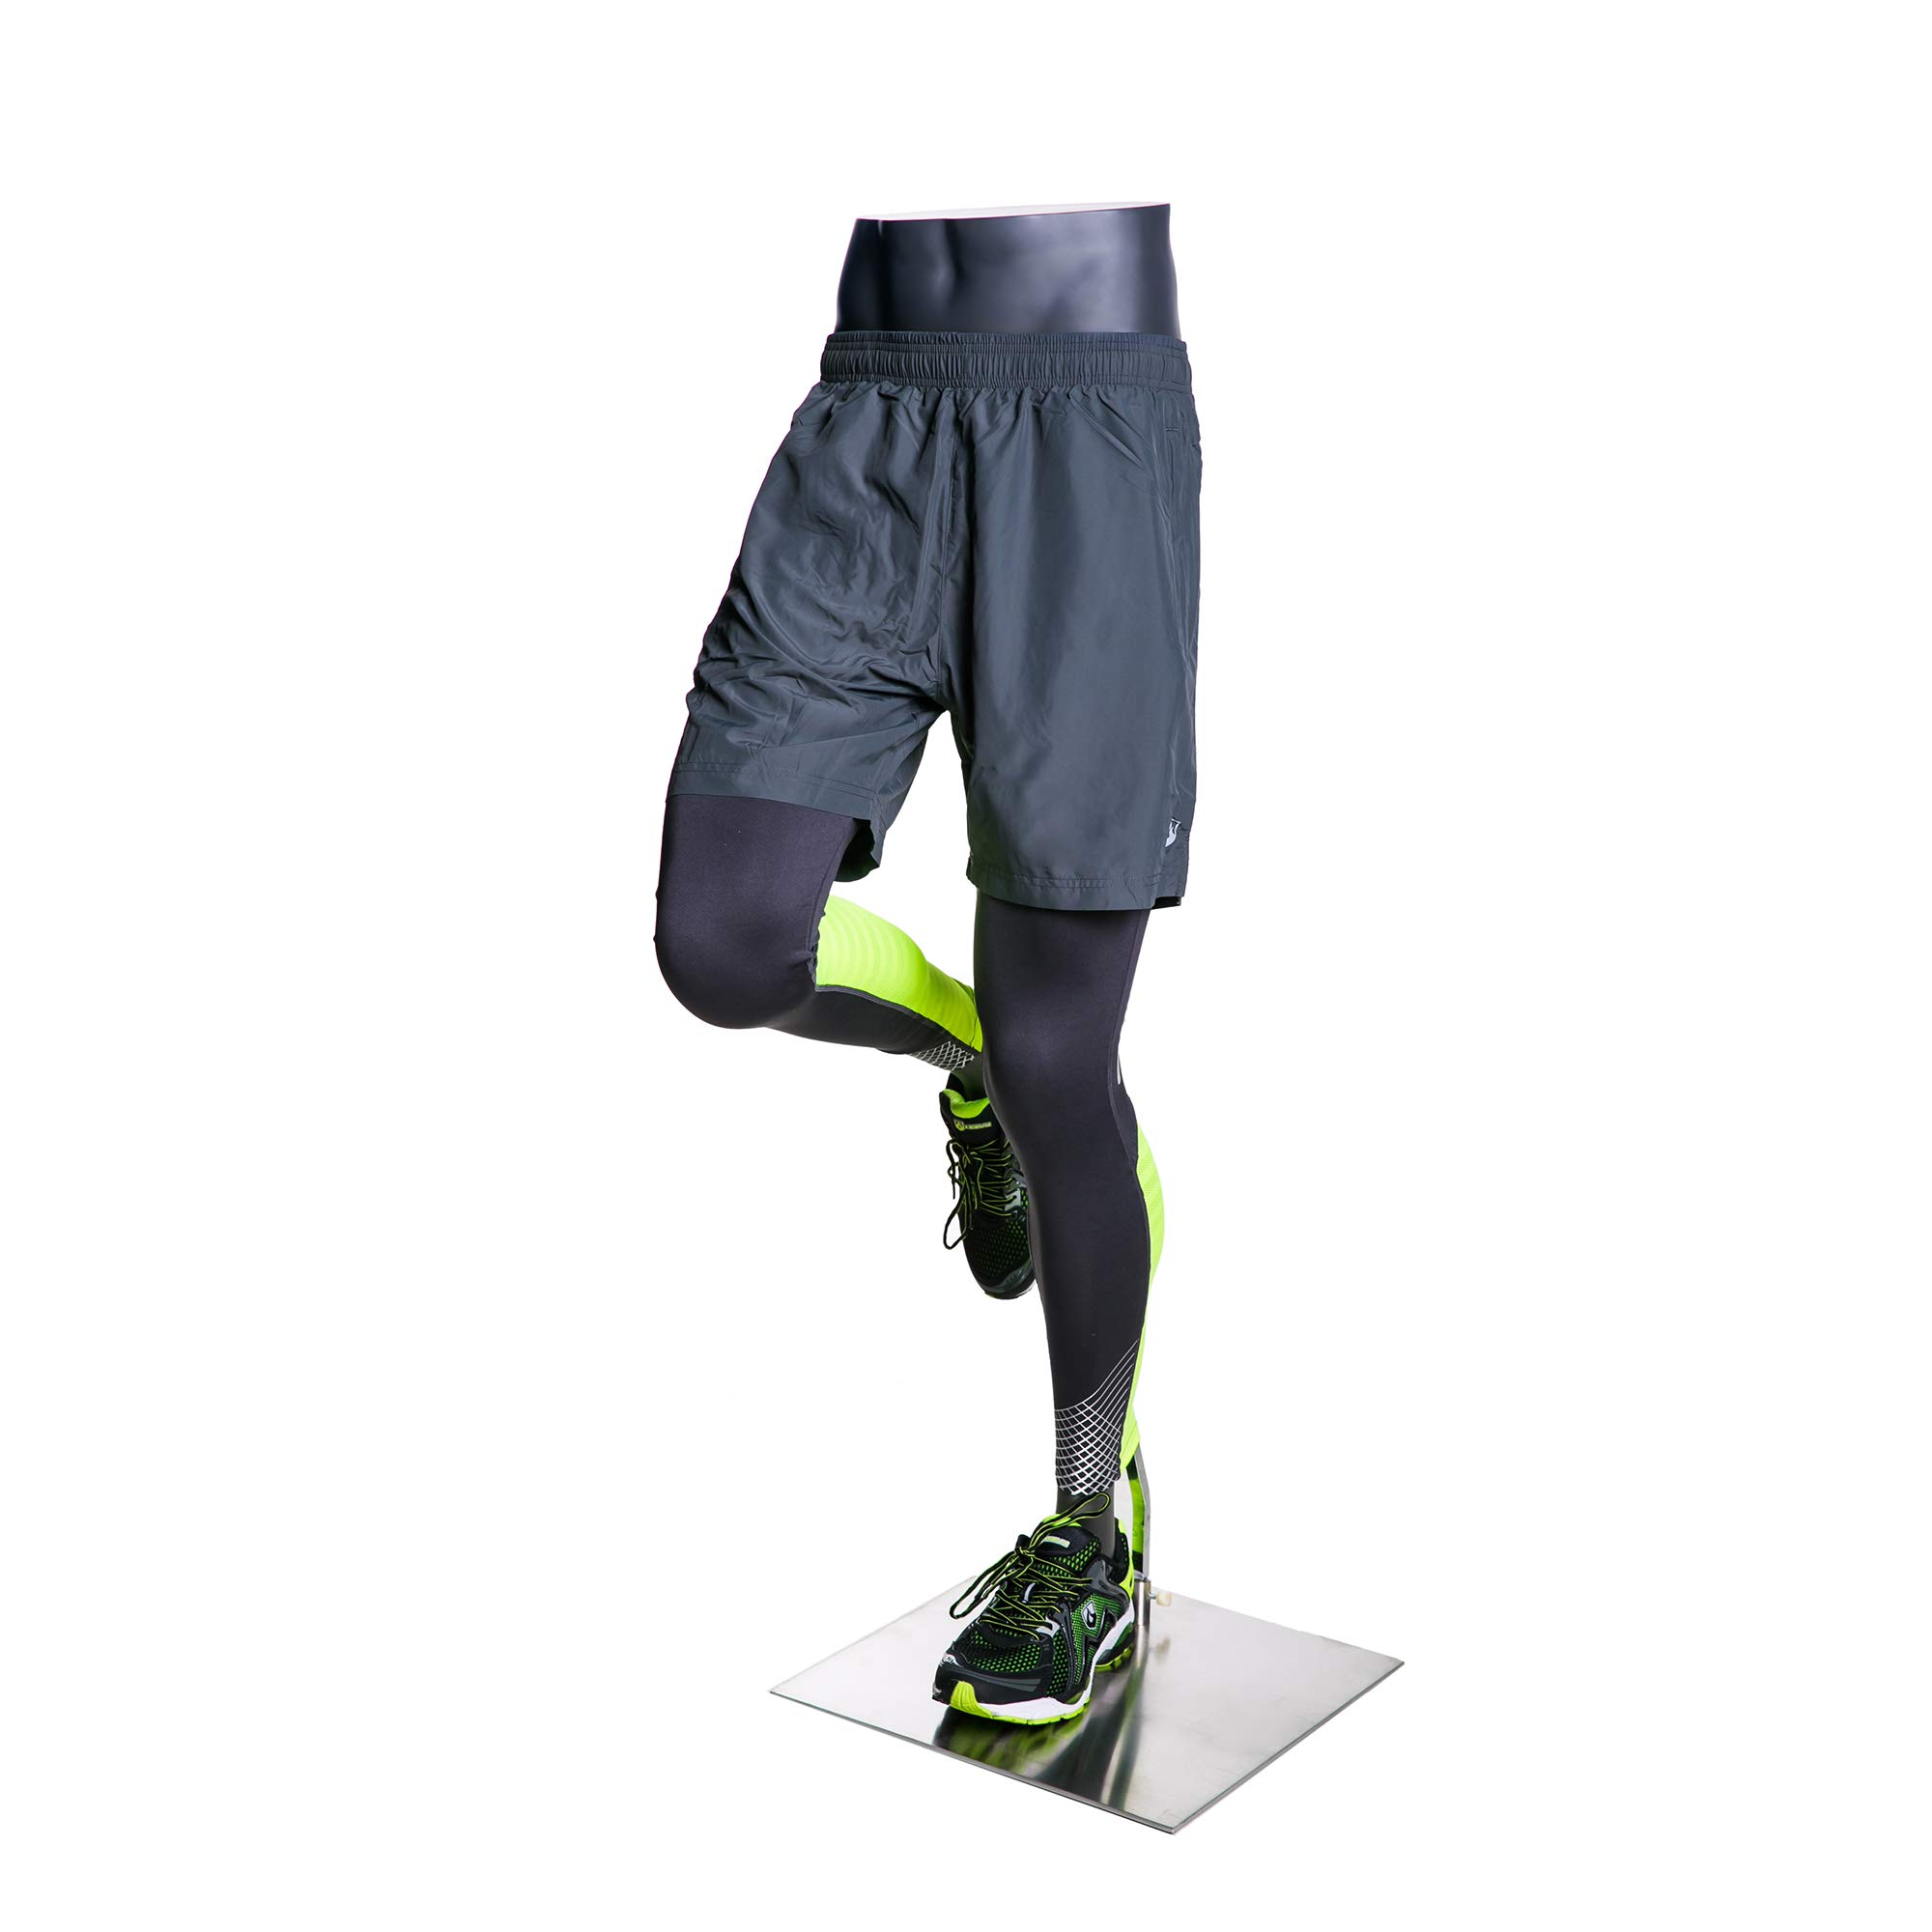 (MZ-HEF50LEG) High end Quality. Eye Catching Male Headless Mannequin Leg, Athletic Style. Running Pose. by Roxy Display (Image #5)